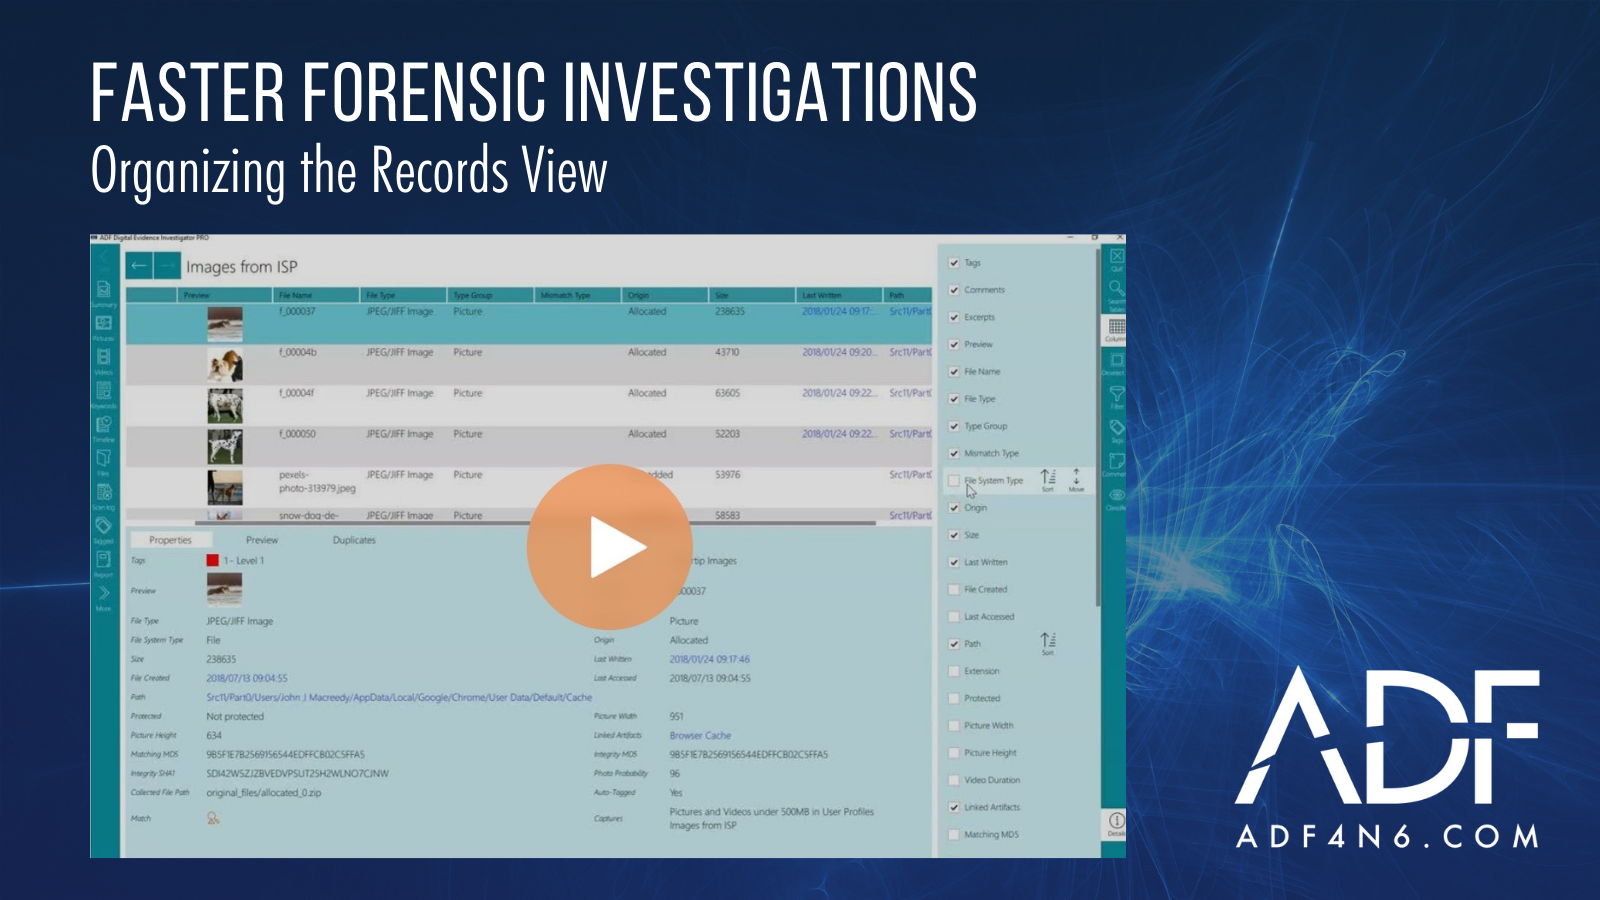 Organizing the Records View for Faster Forensic Investigations